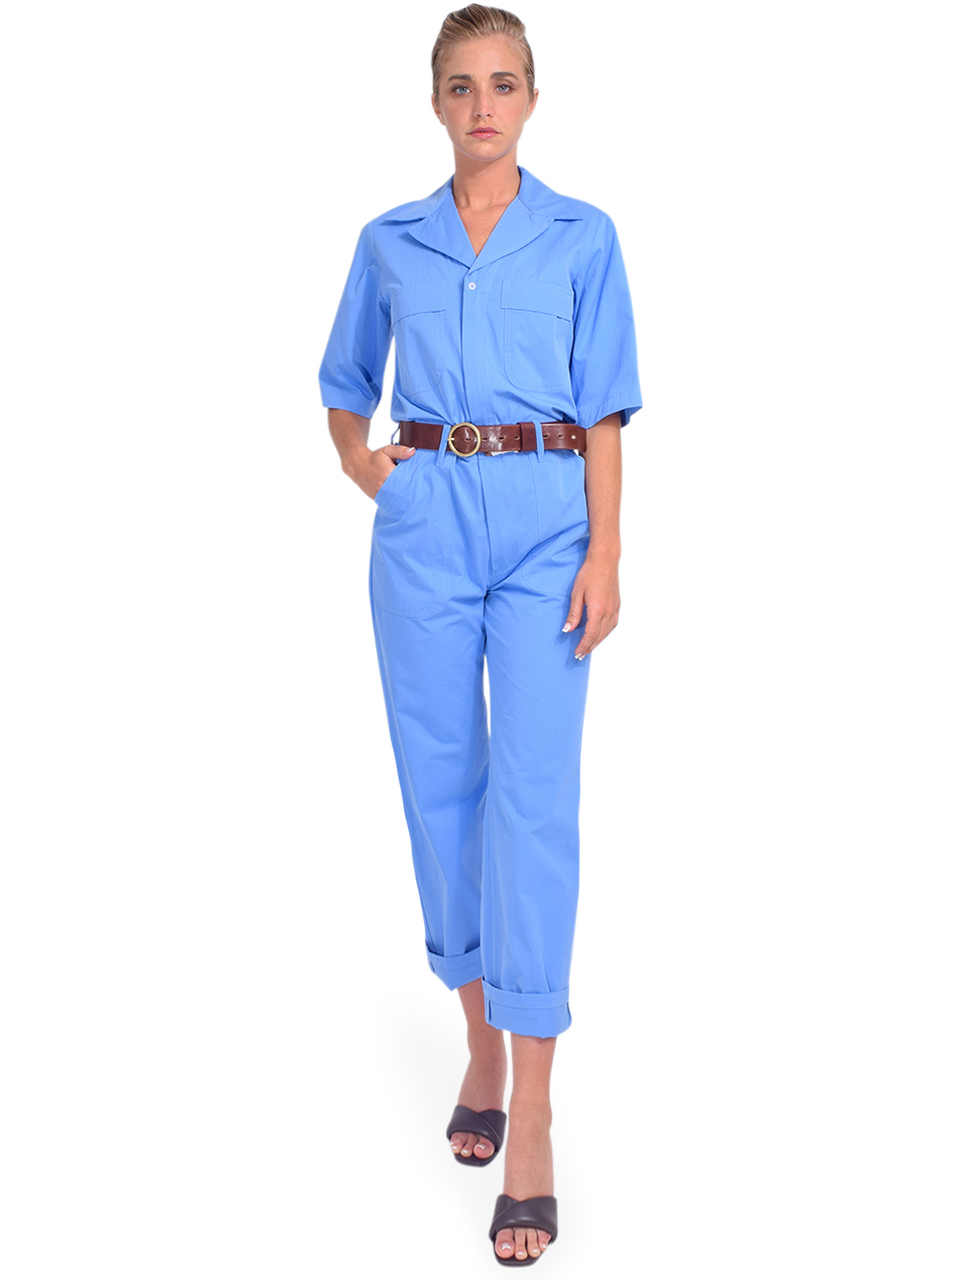 Ottod'Ame Cotton Jumpsuit in Blue Front View  x1https://cdn11.bigcommerce.com/s-3wu6n/products/33865/images/112628/DSC_0015__93031.1618436699.244.365.jpg?c=2x2